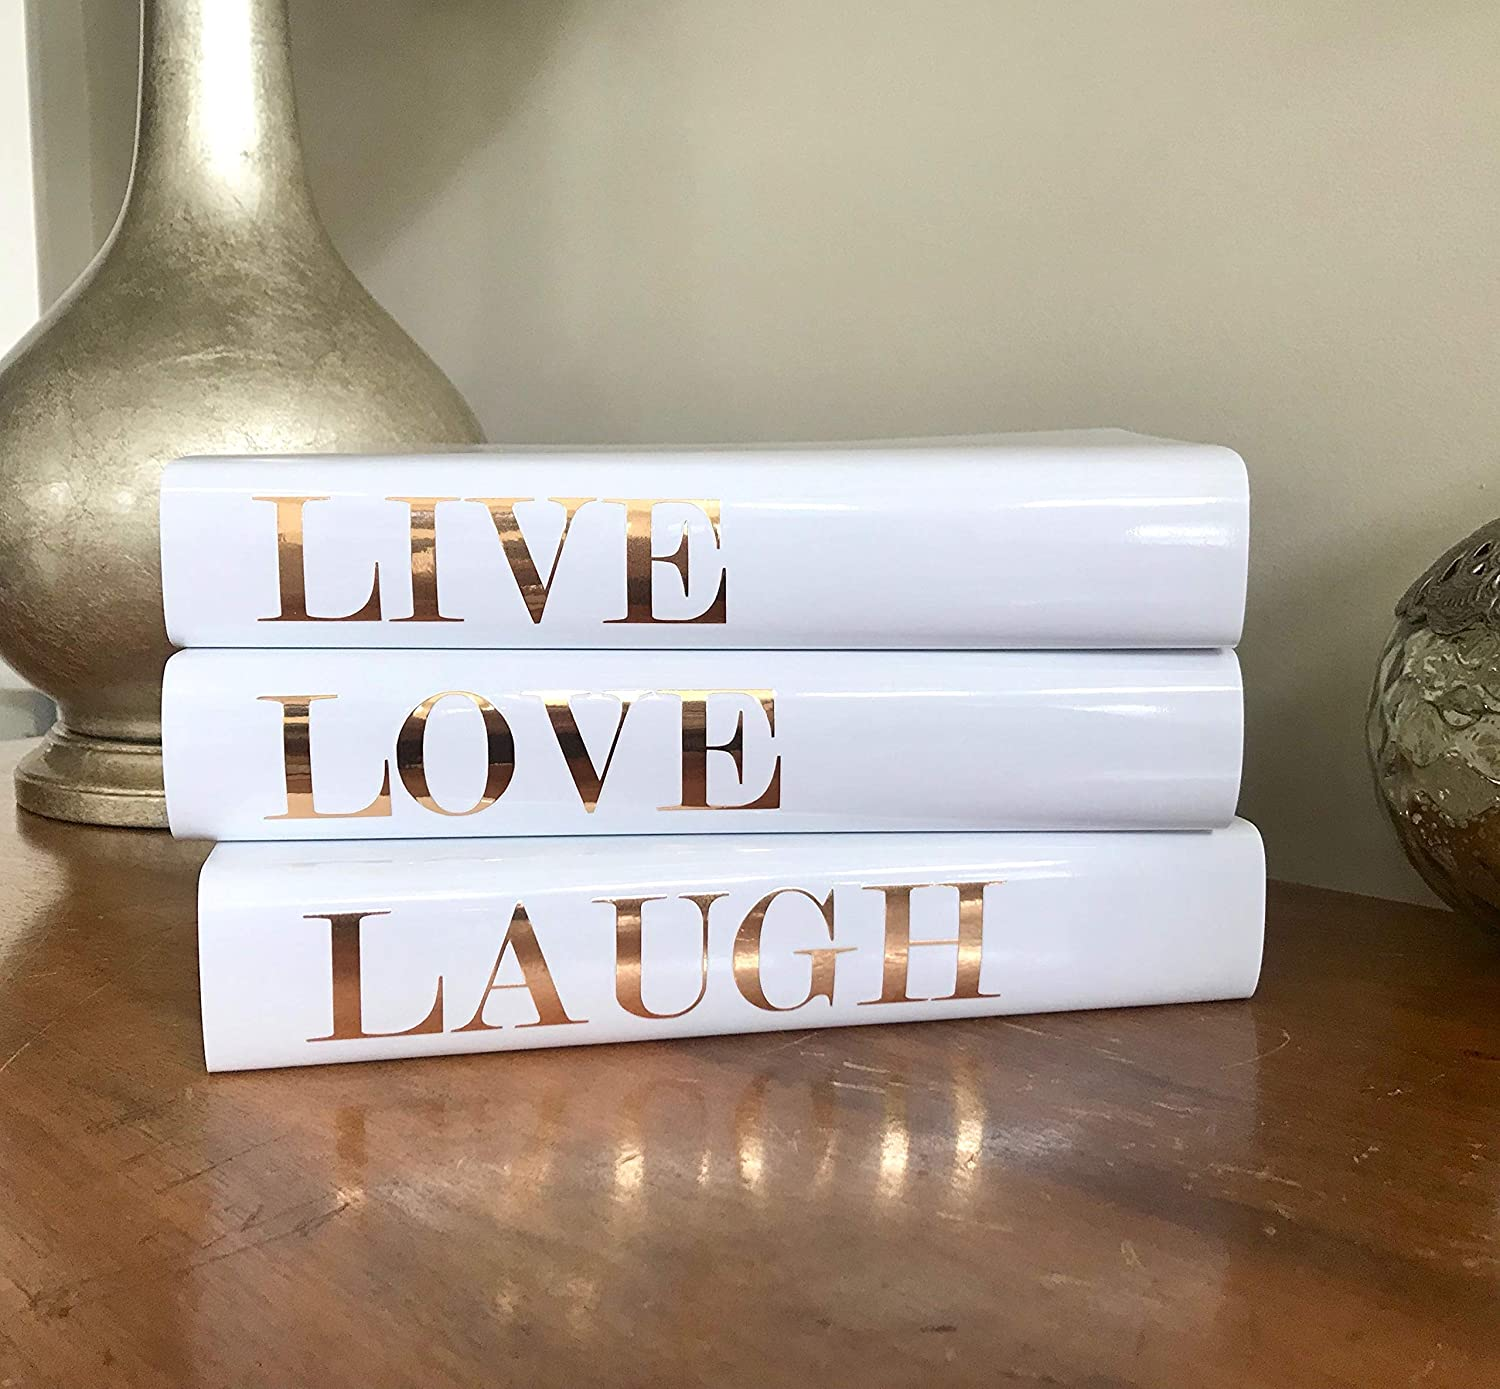 Amazon Com Live Love Laugh Decorative Books Gold Silver Books For Display Coffee Table Books Designer Book Stack Decor Handmade